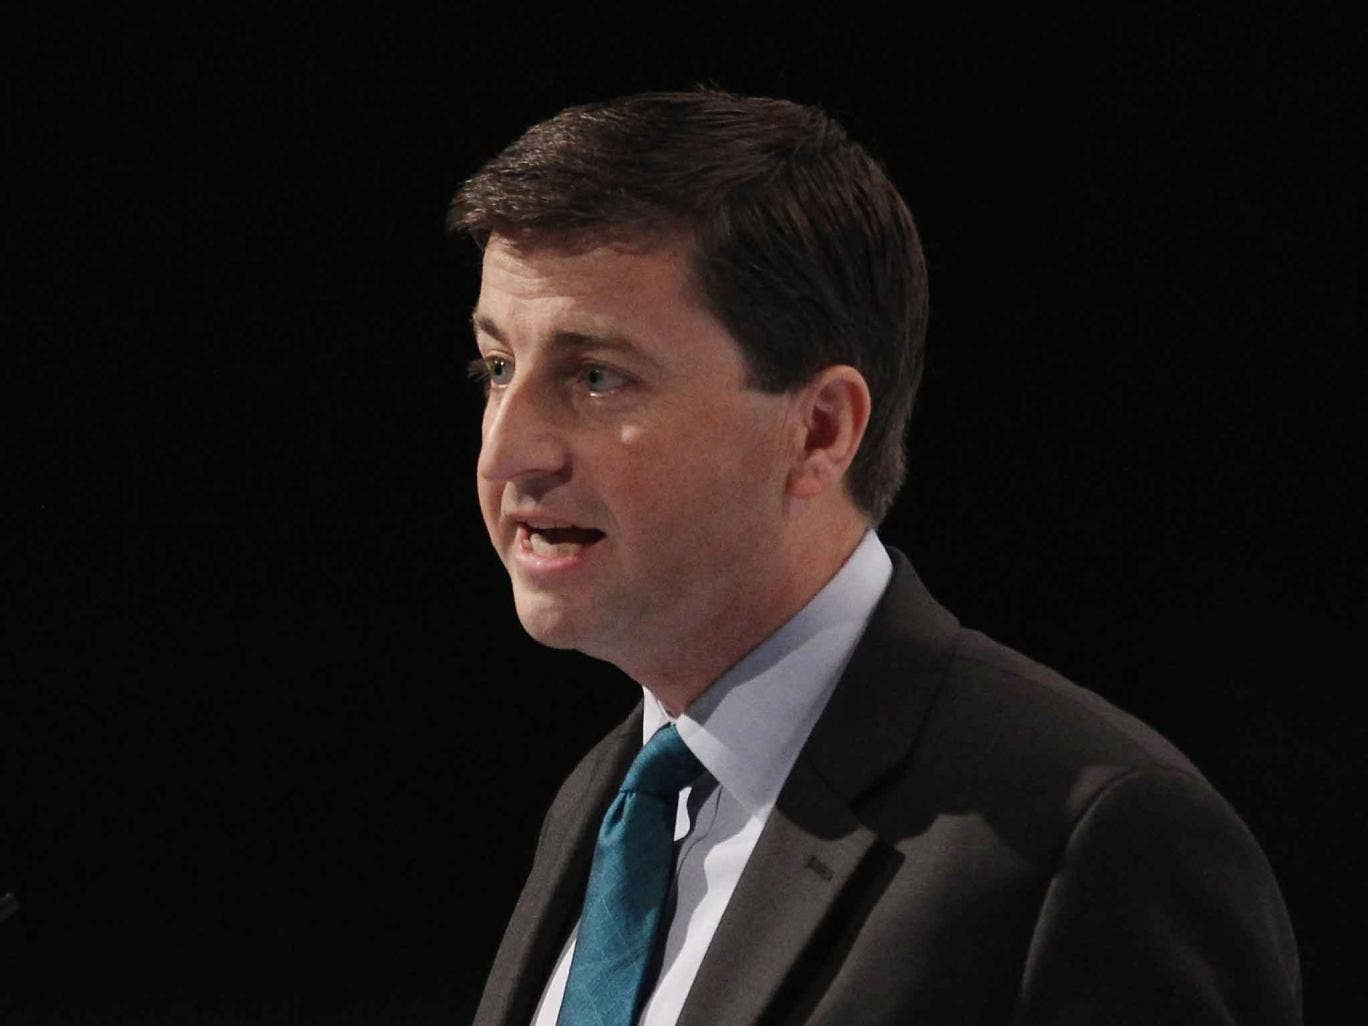 Douglas Alexander has called for a European Union meeting to review all the aid it gives to the Egyptian government